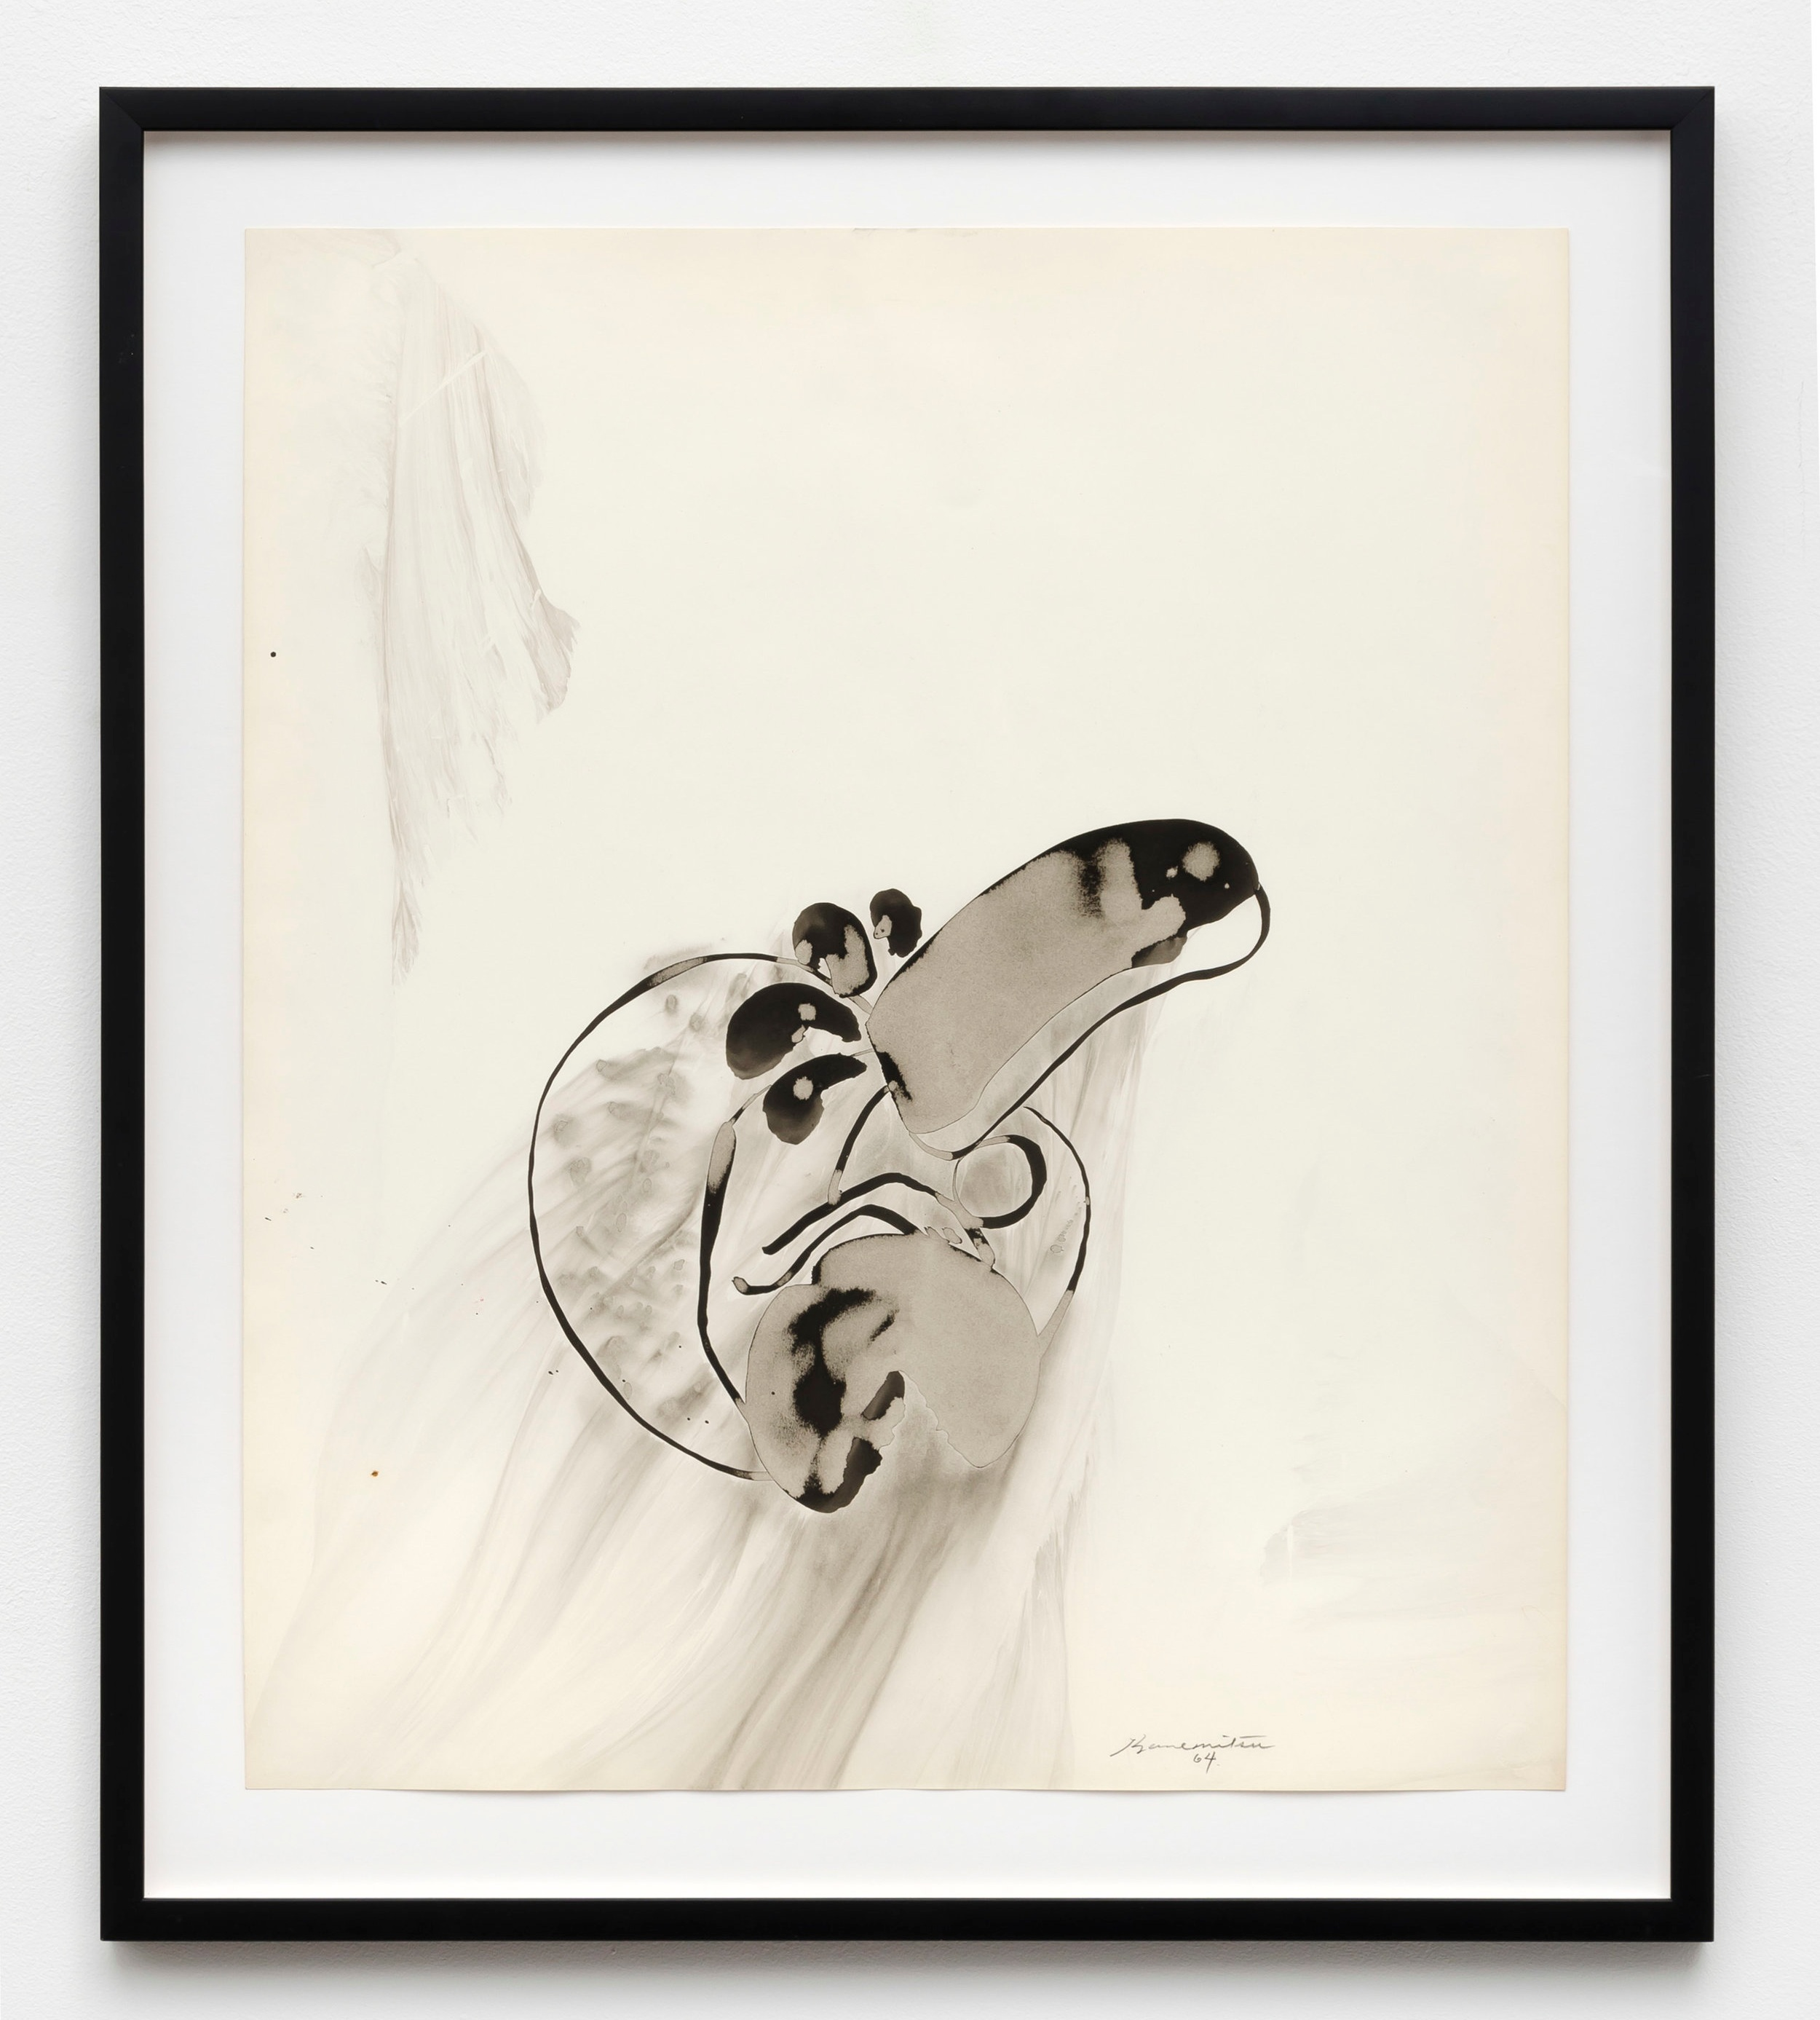 Untitled   1964  sumi ink on paper  32.5 x 28 inches, 82.5 x 71.1 centimeters